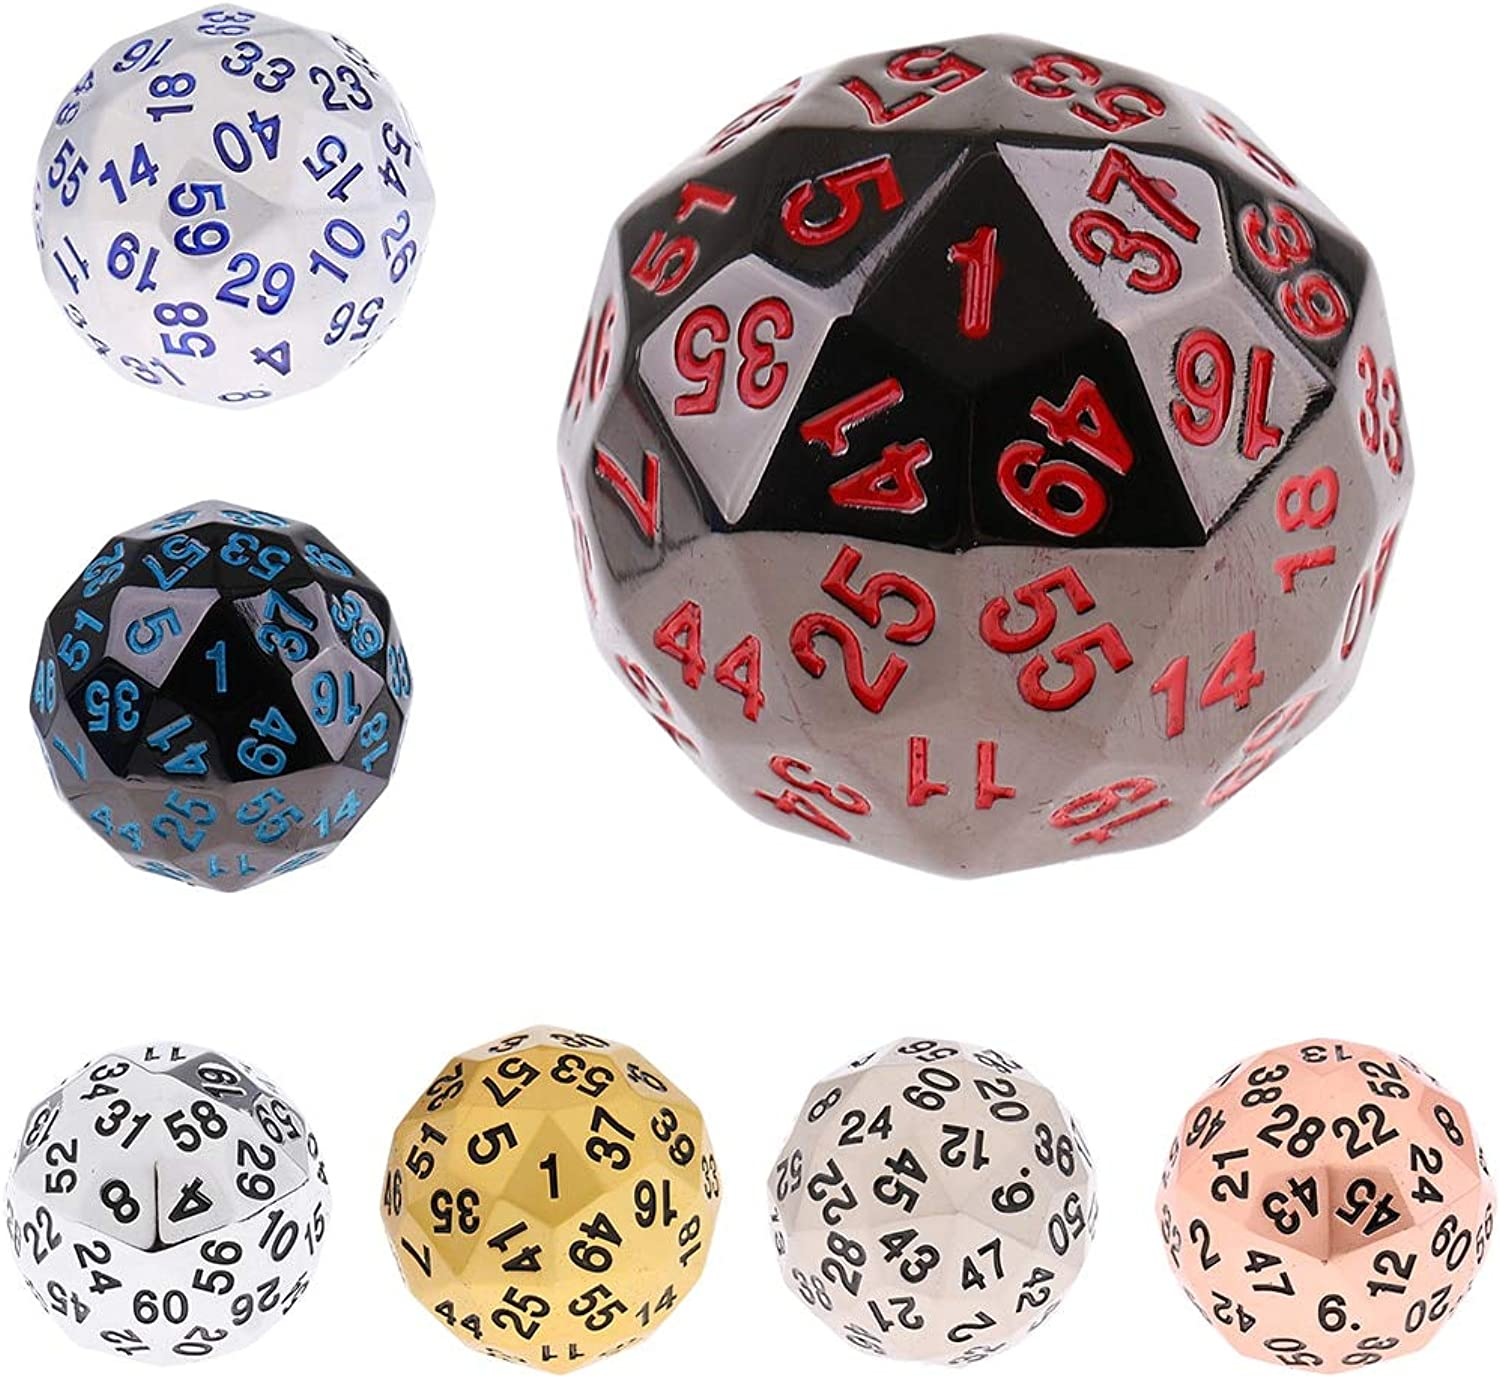 Sala-Fnt - 1 Pcs 38mm Alloy Polyhedral Dice 60 Sided D60 Die for D&D RPG Board Game w Bag Dungeons and Dragons MTG Gaming Supplies Gift